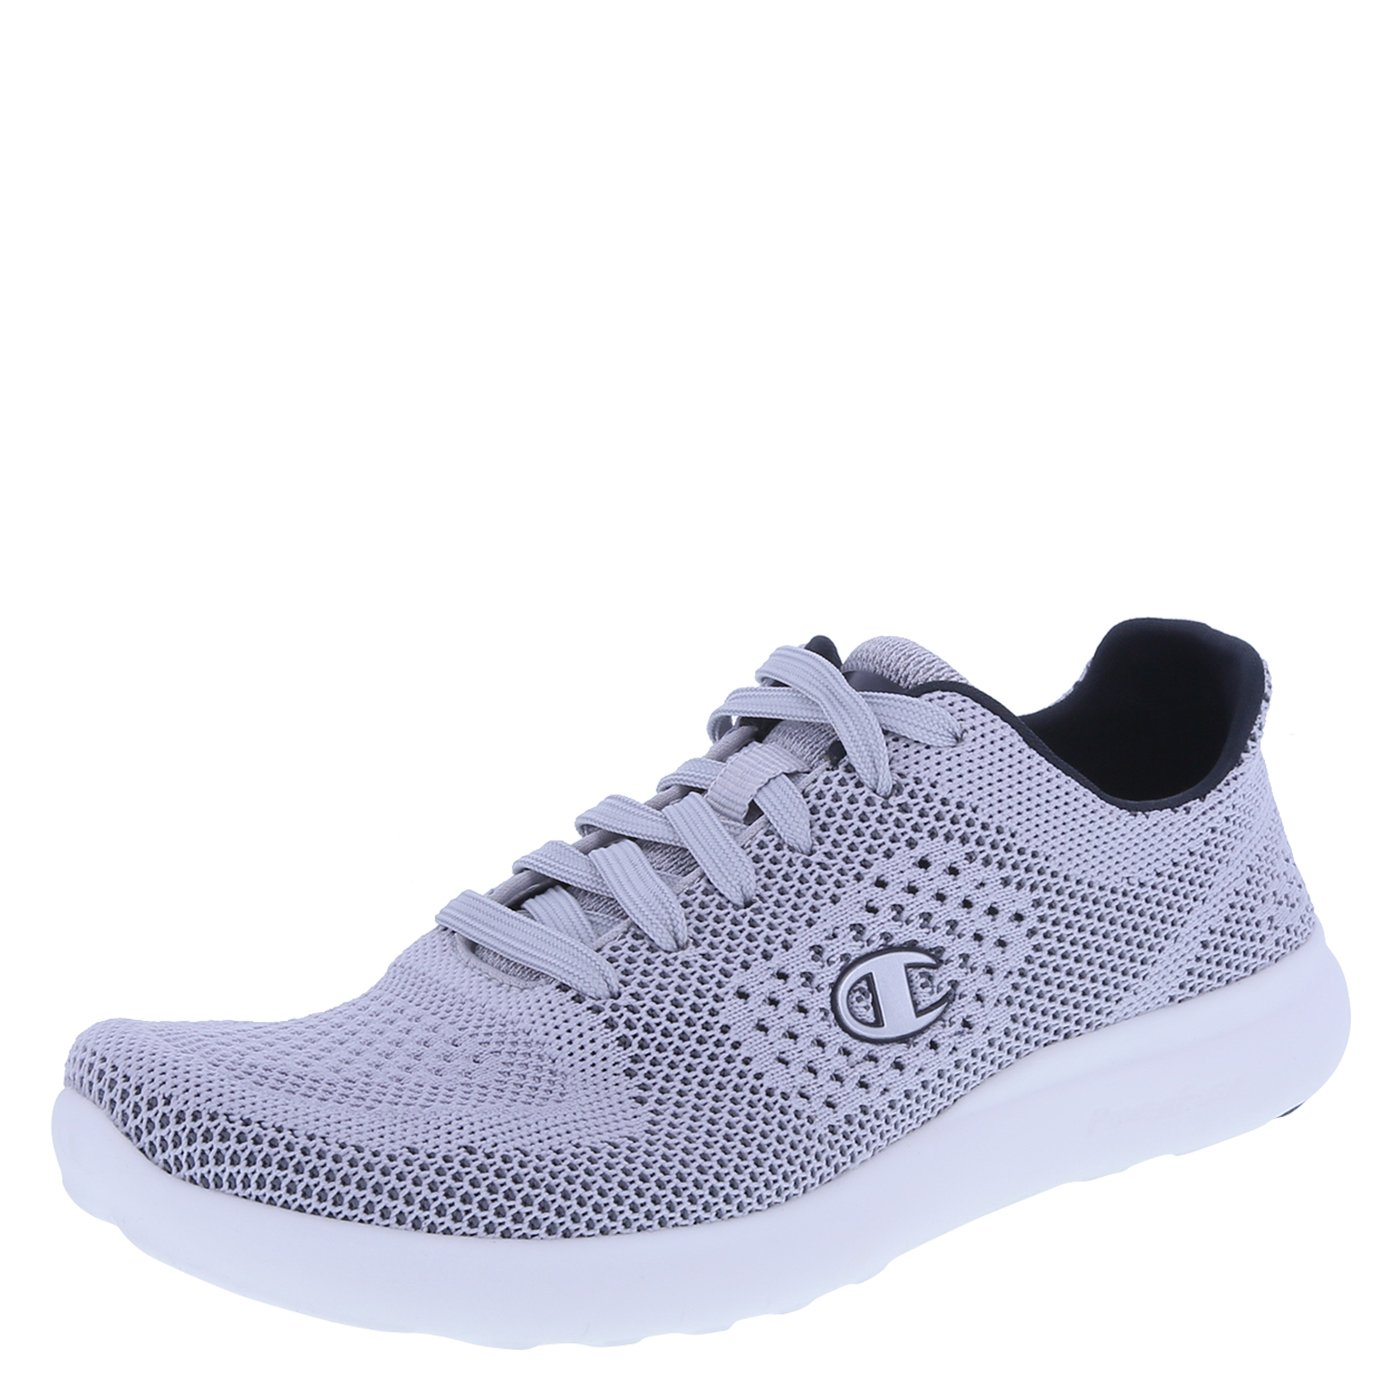 Champion Women's Activate Power Knit Runner B0753HS29V 9 B(M) US|Grey